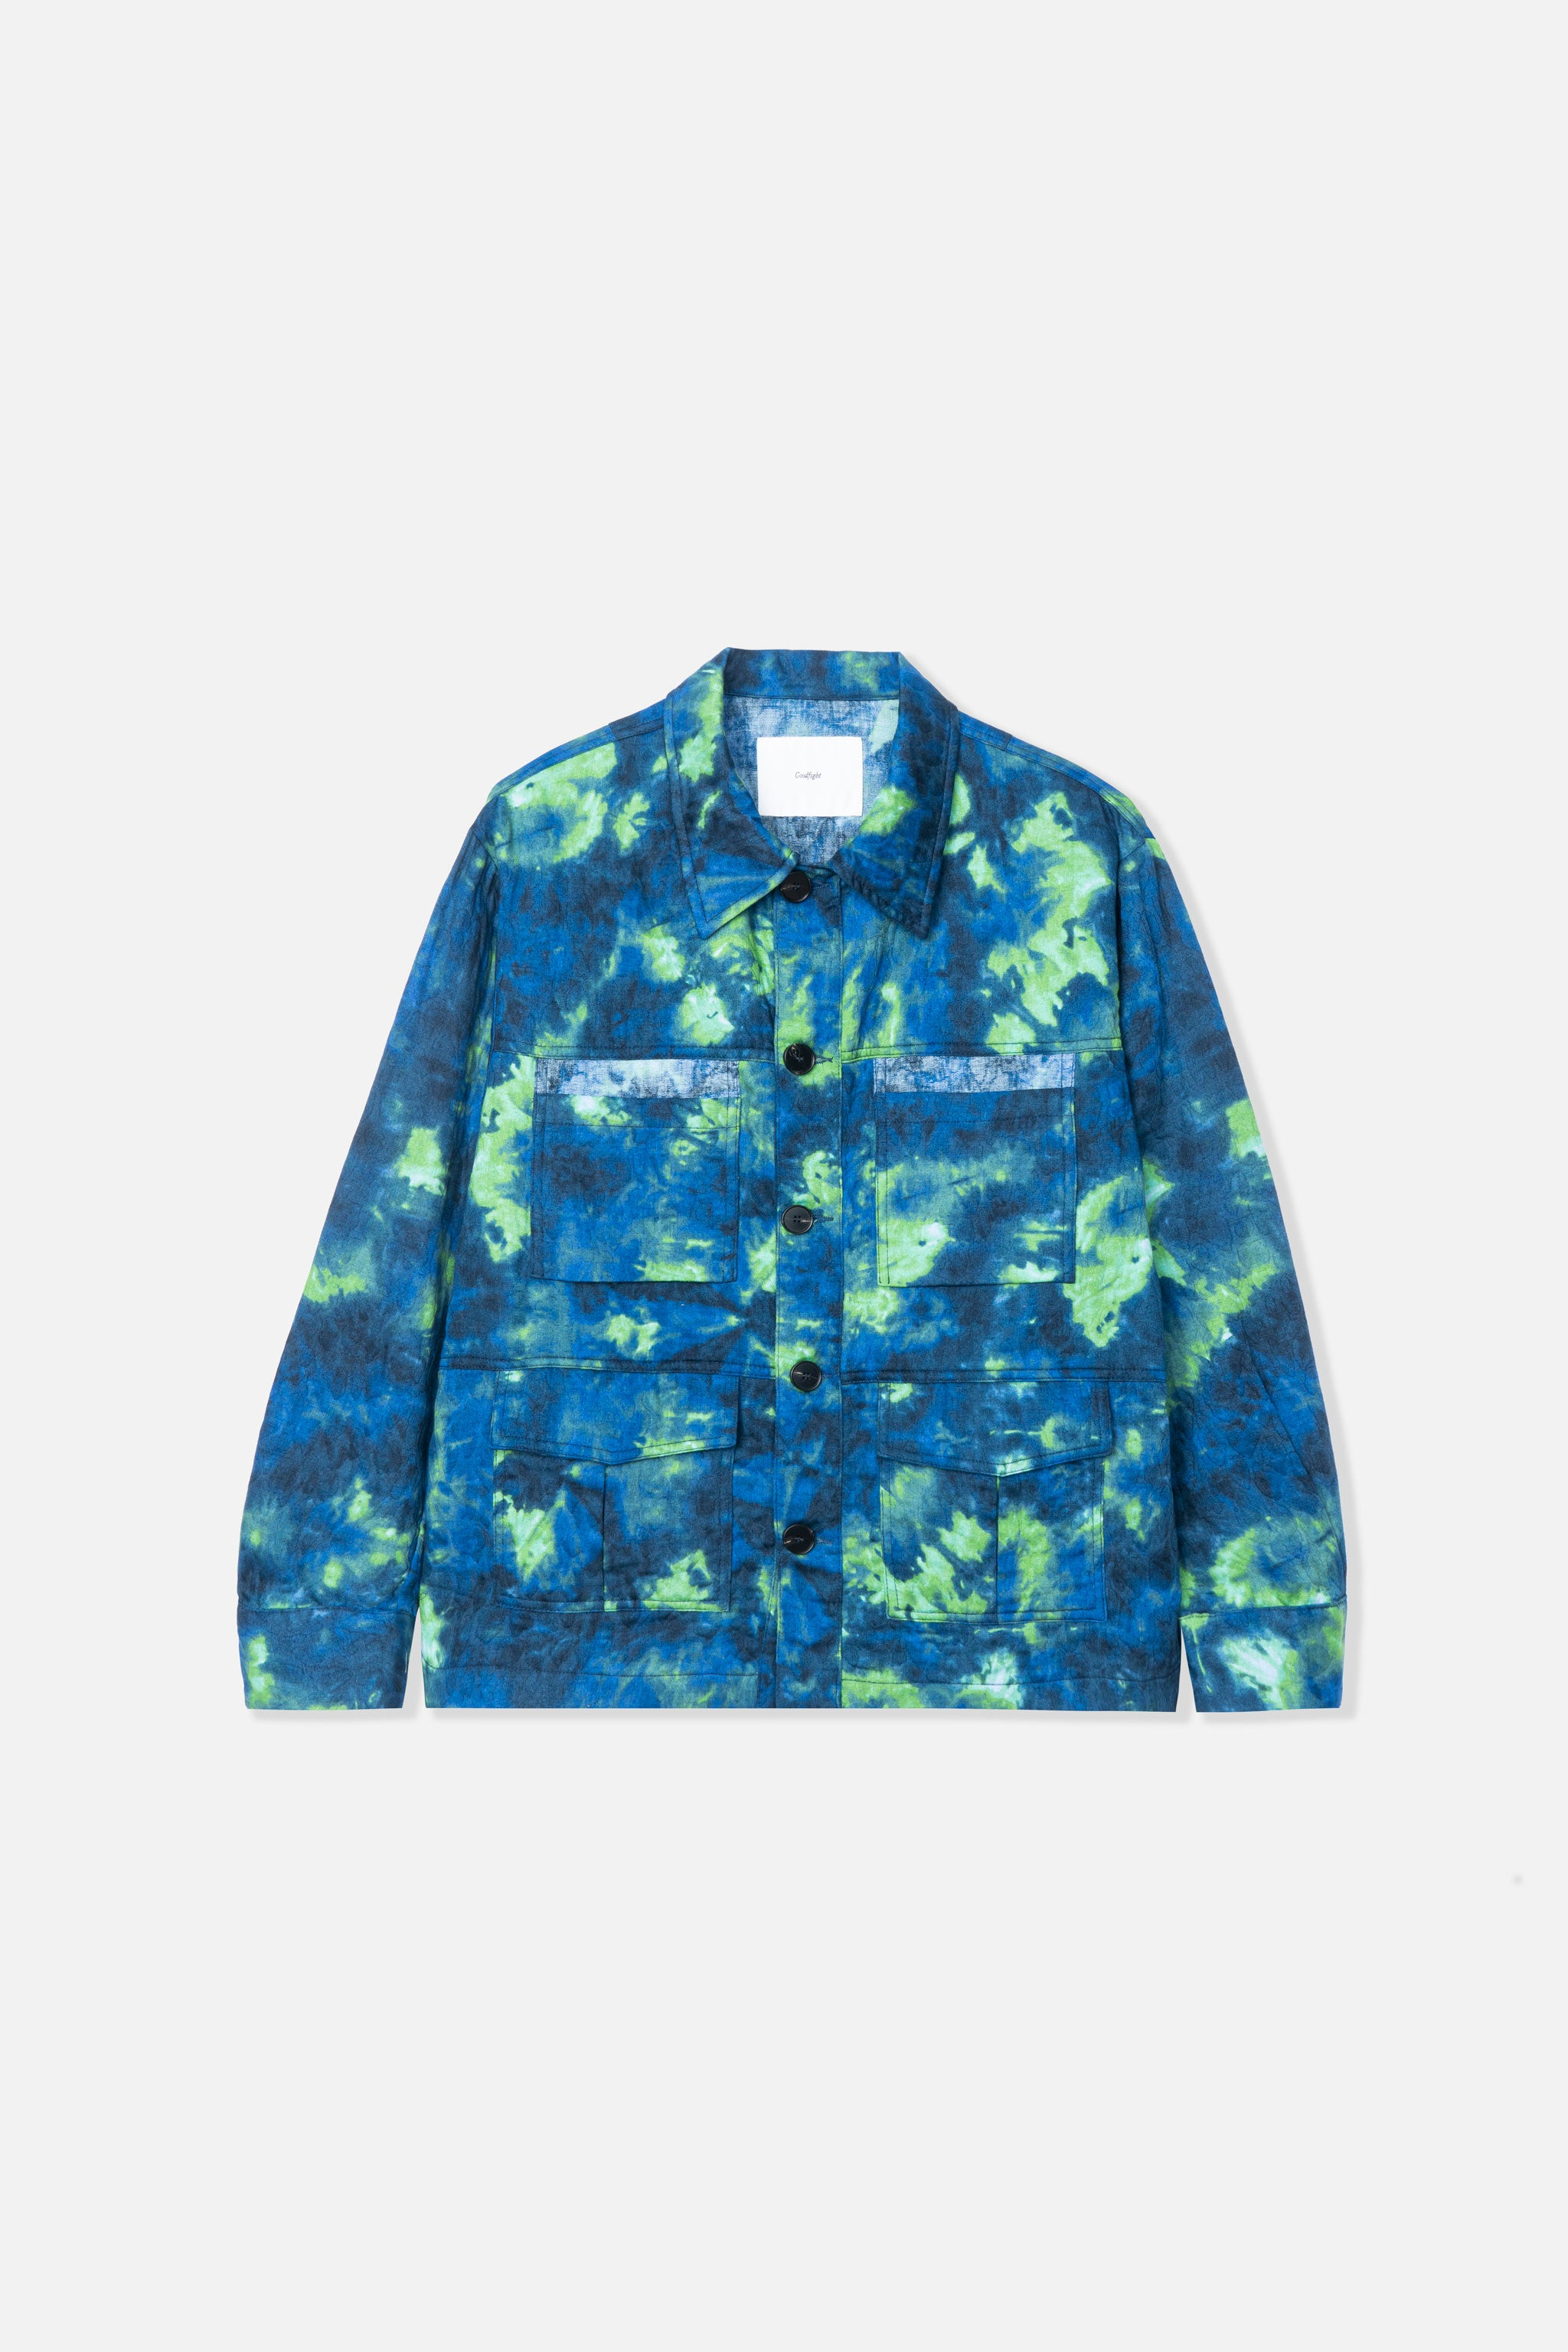 Goodfight Triptech BDU Jacket Blue Camo